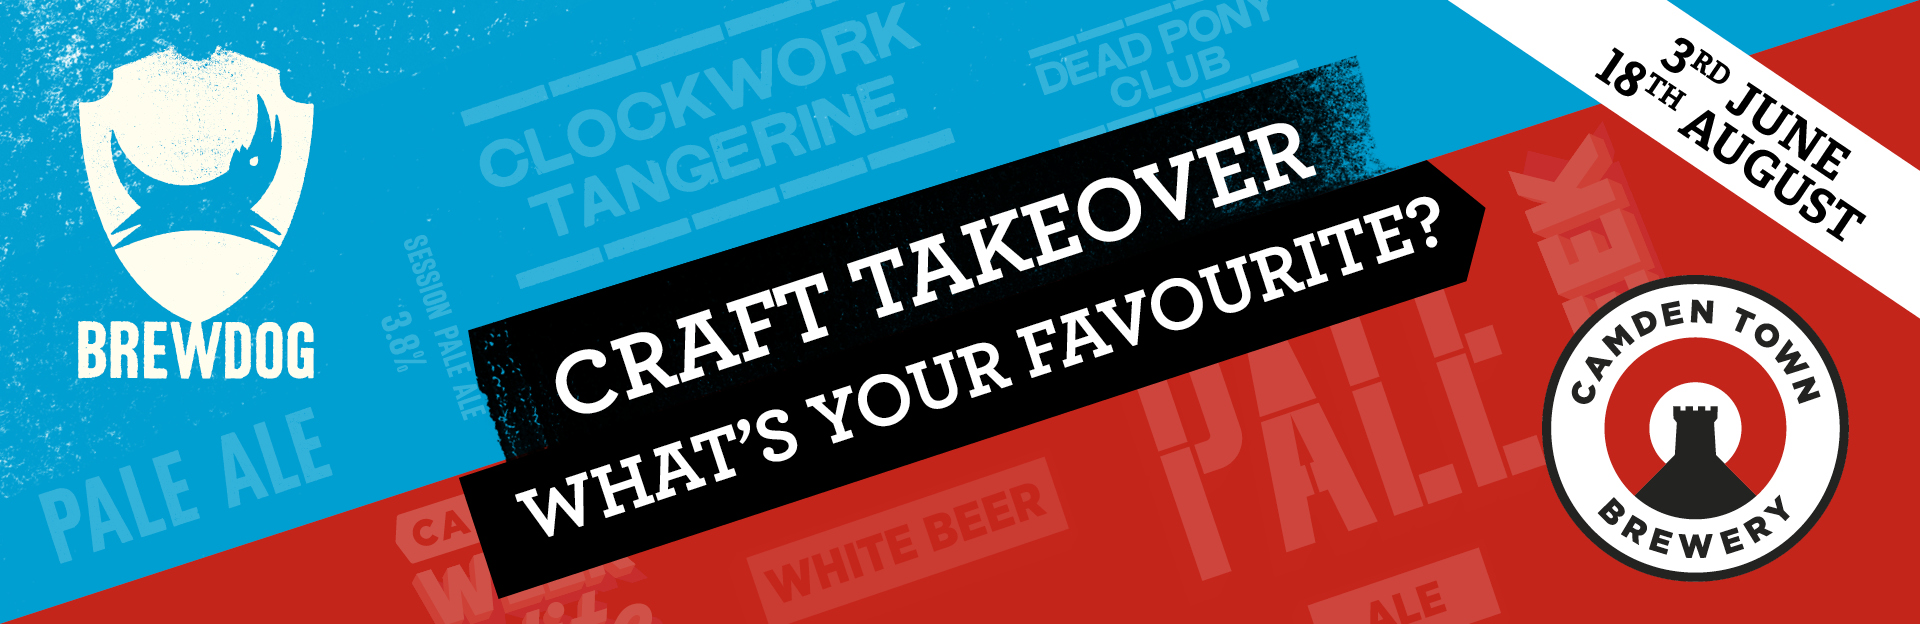 Craft Takeover at The Rocket